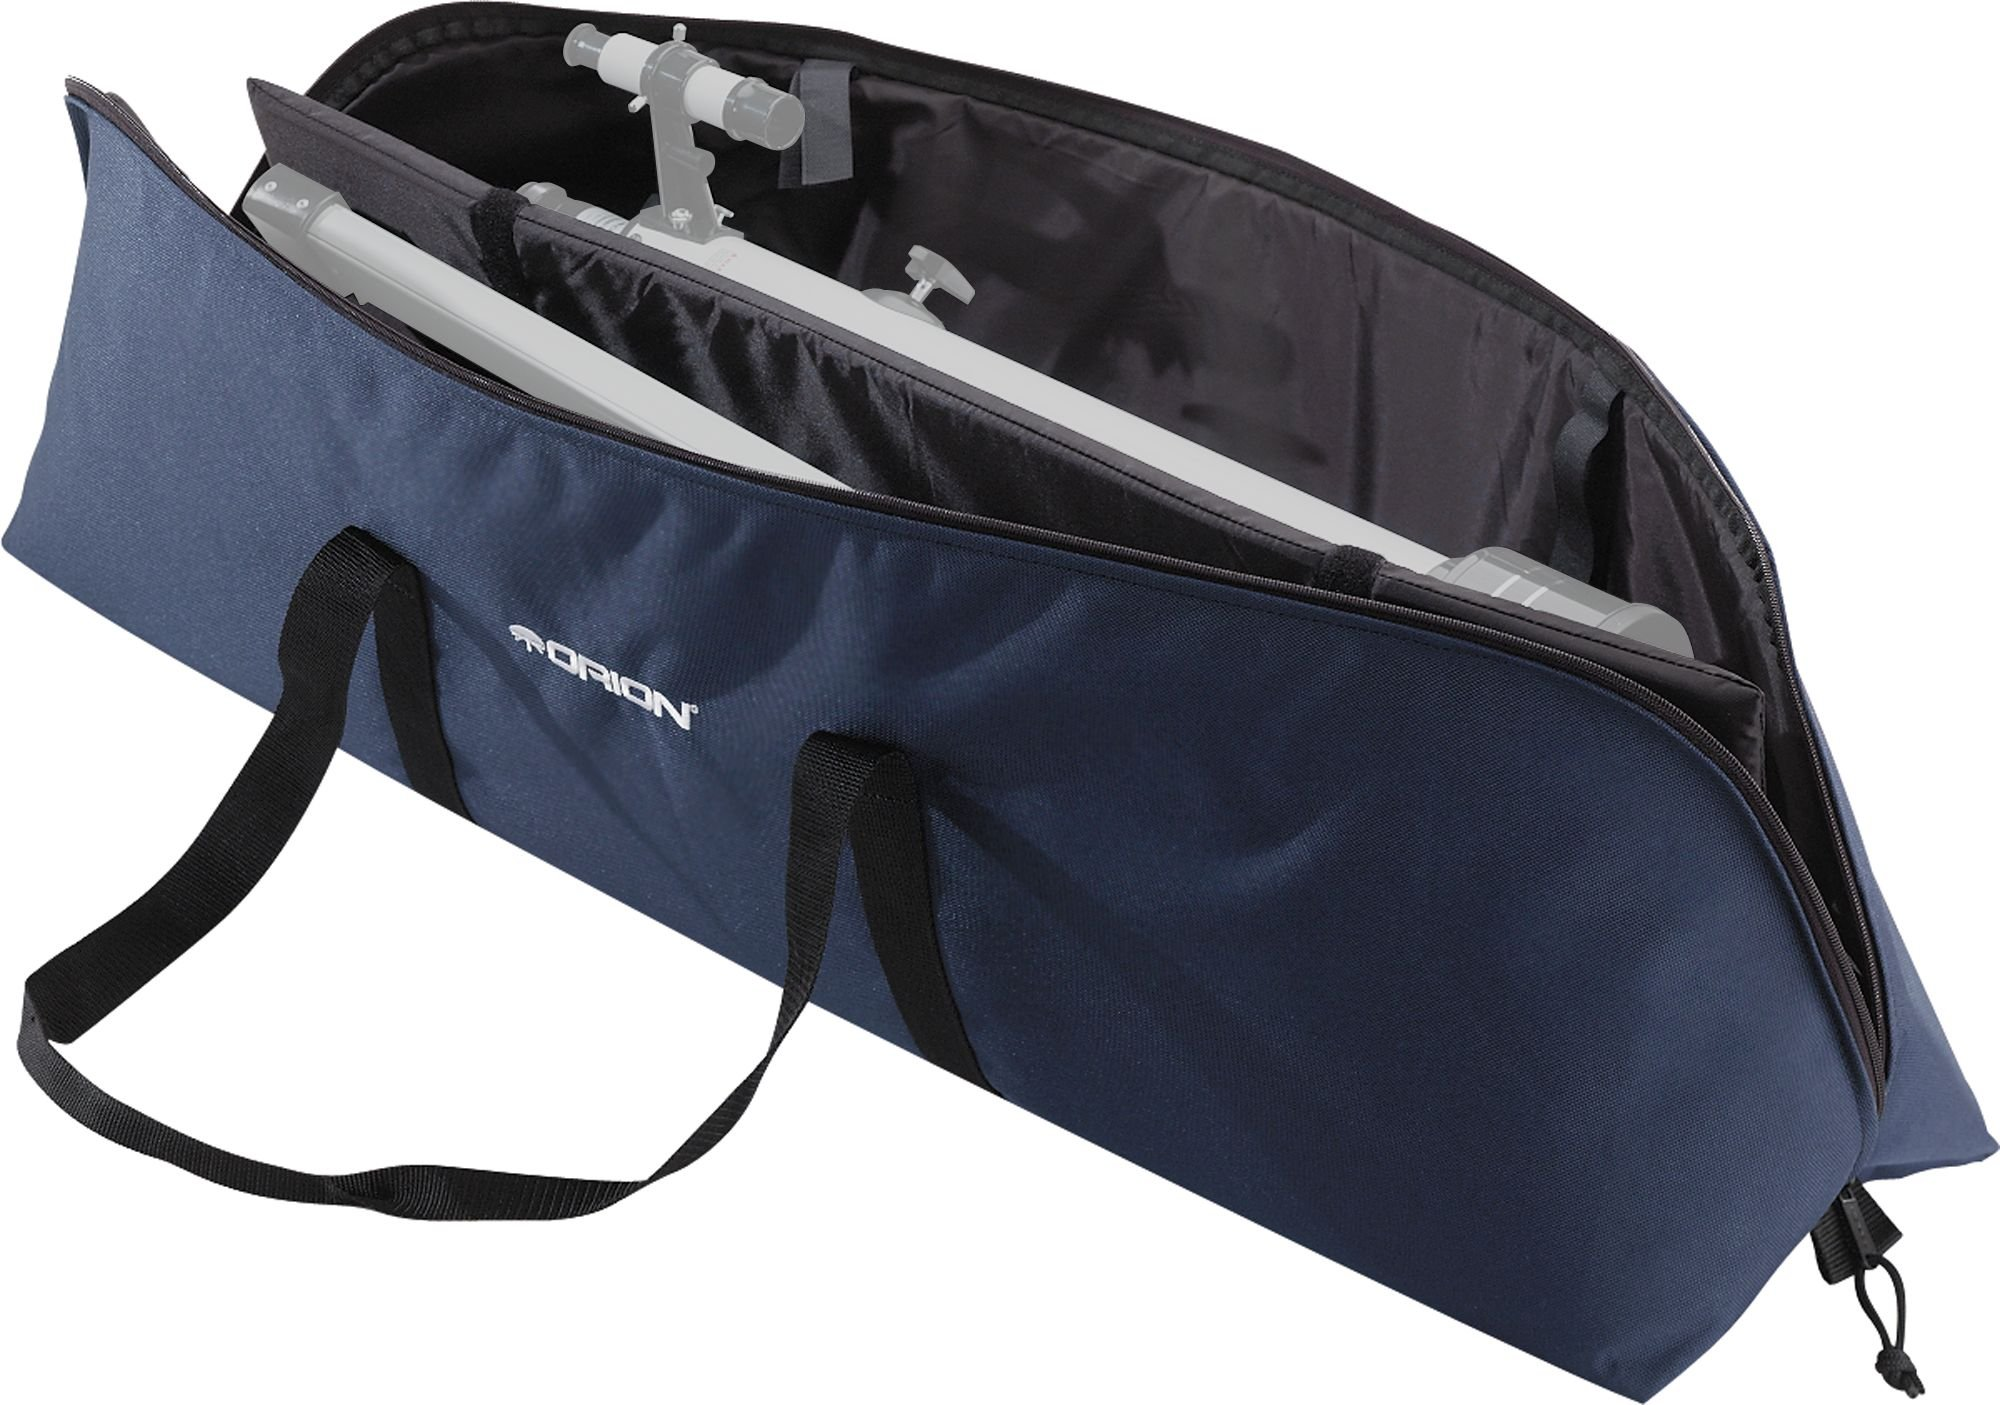 Orion 15161 39x9.5x11 - Inch Padded Telescope Case by Orion